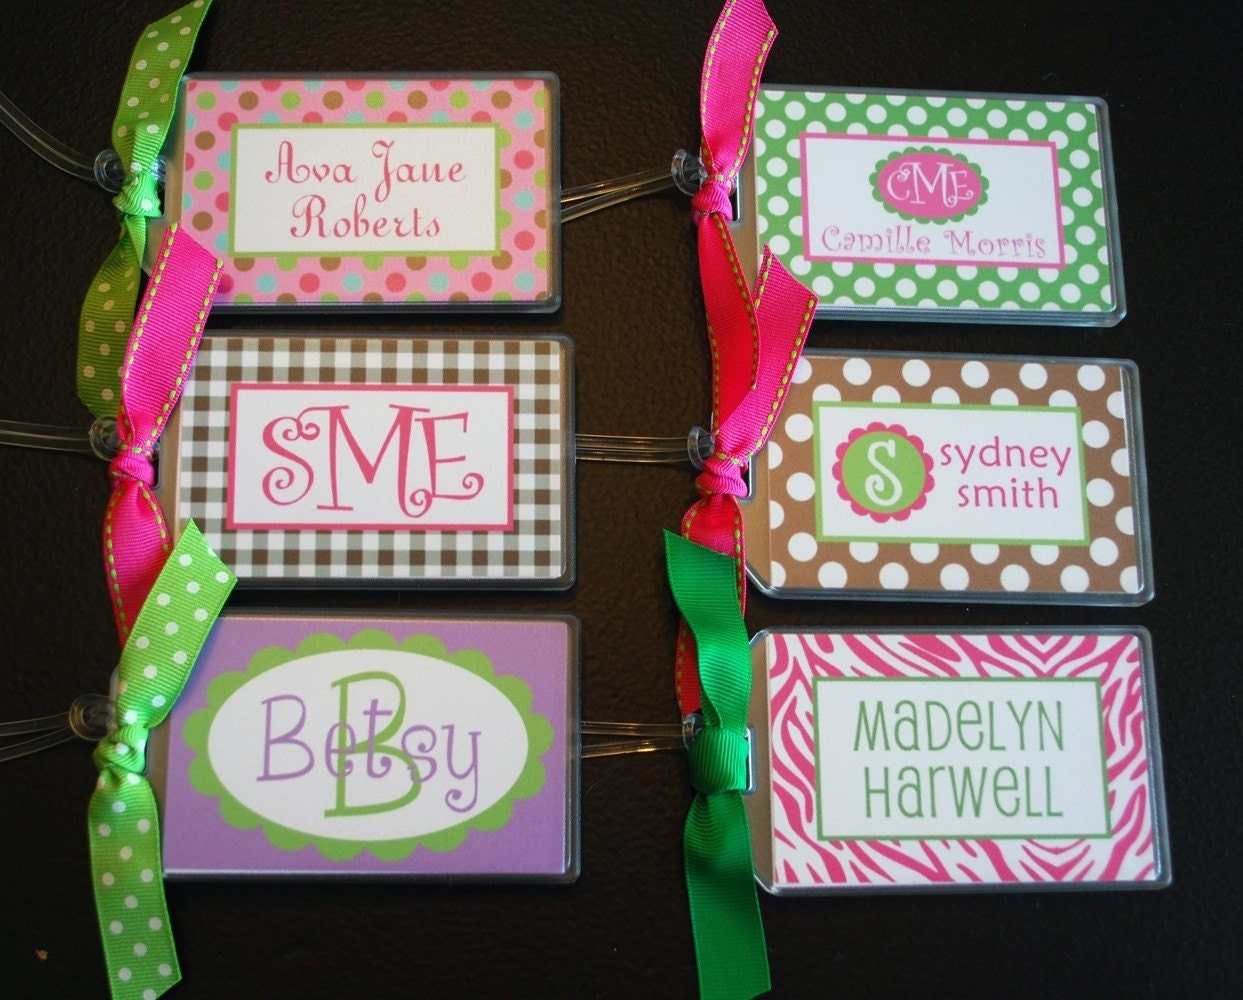 Girl Personalized Name / Monogram Bag Tag - Luggage, Backpack, Book Bag, Diaper Bag, etc - Design your own